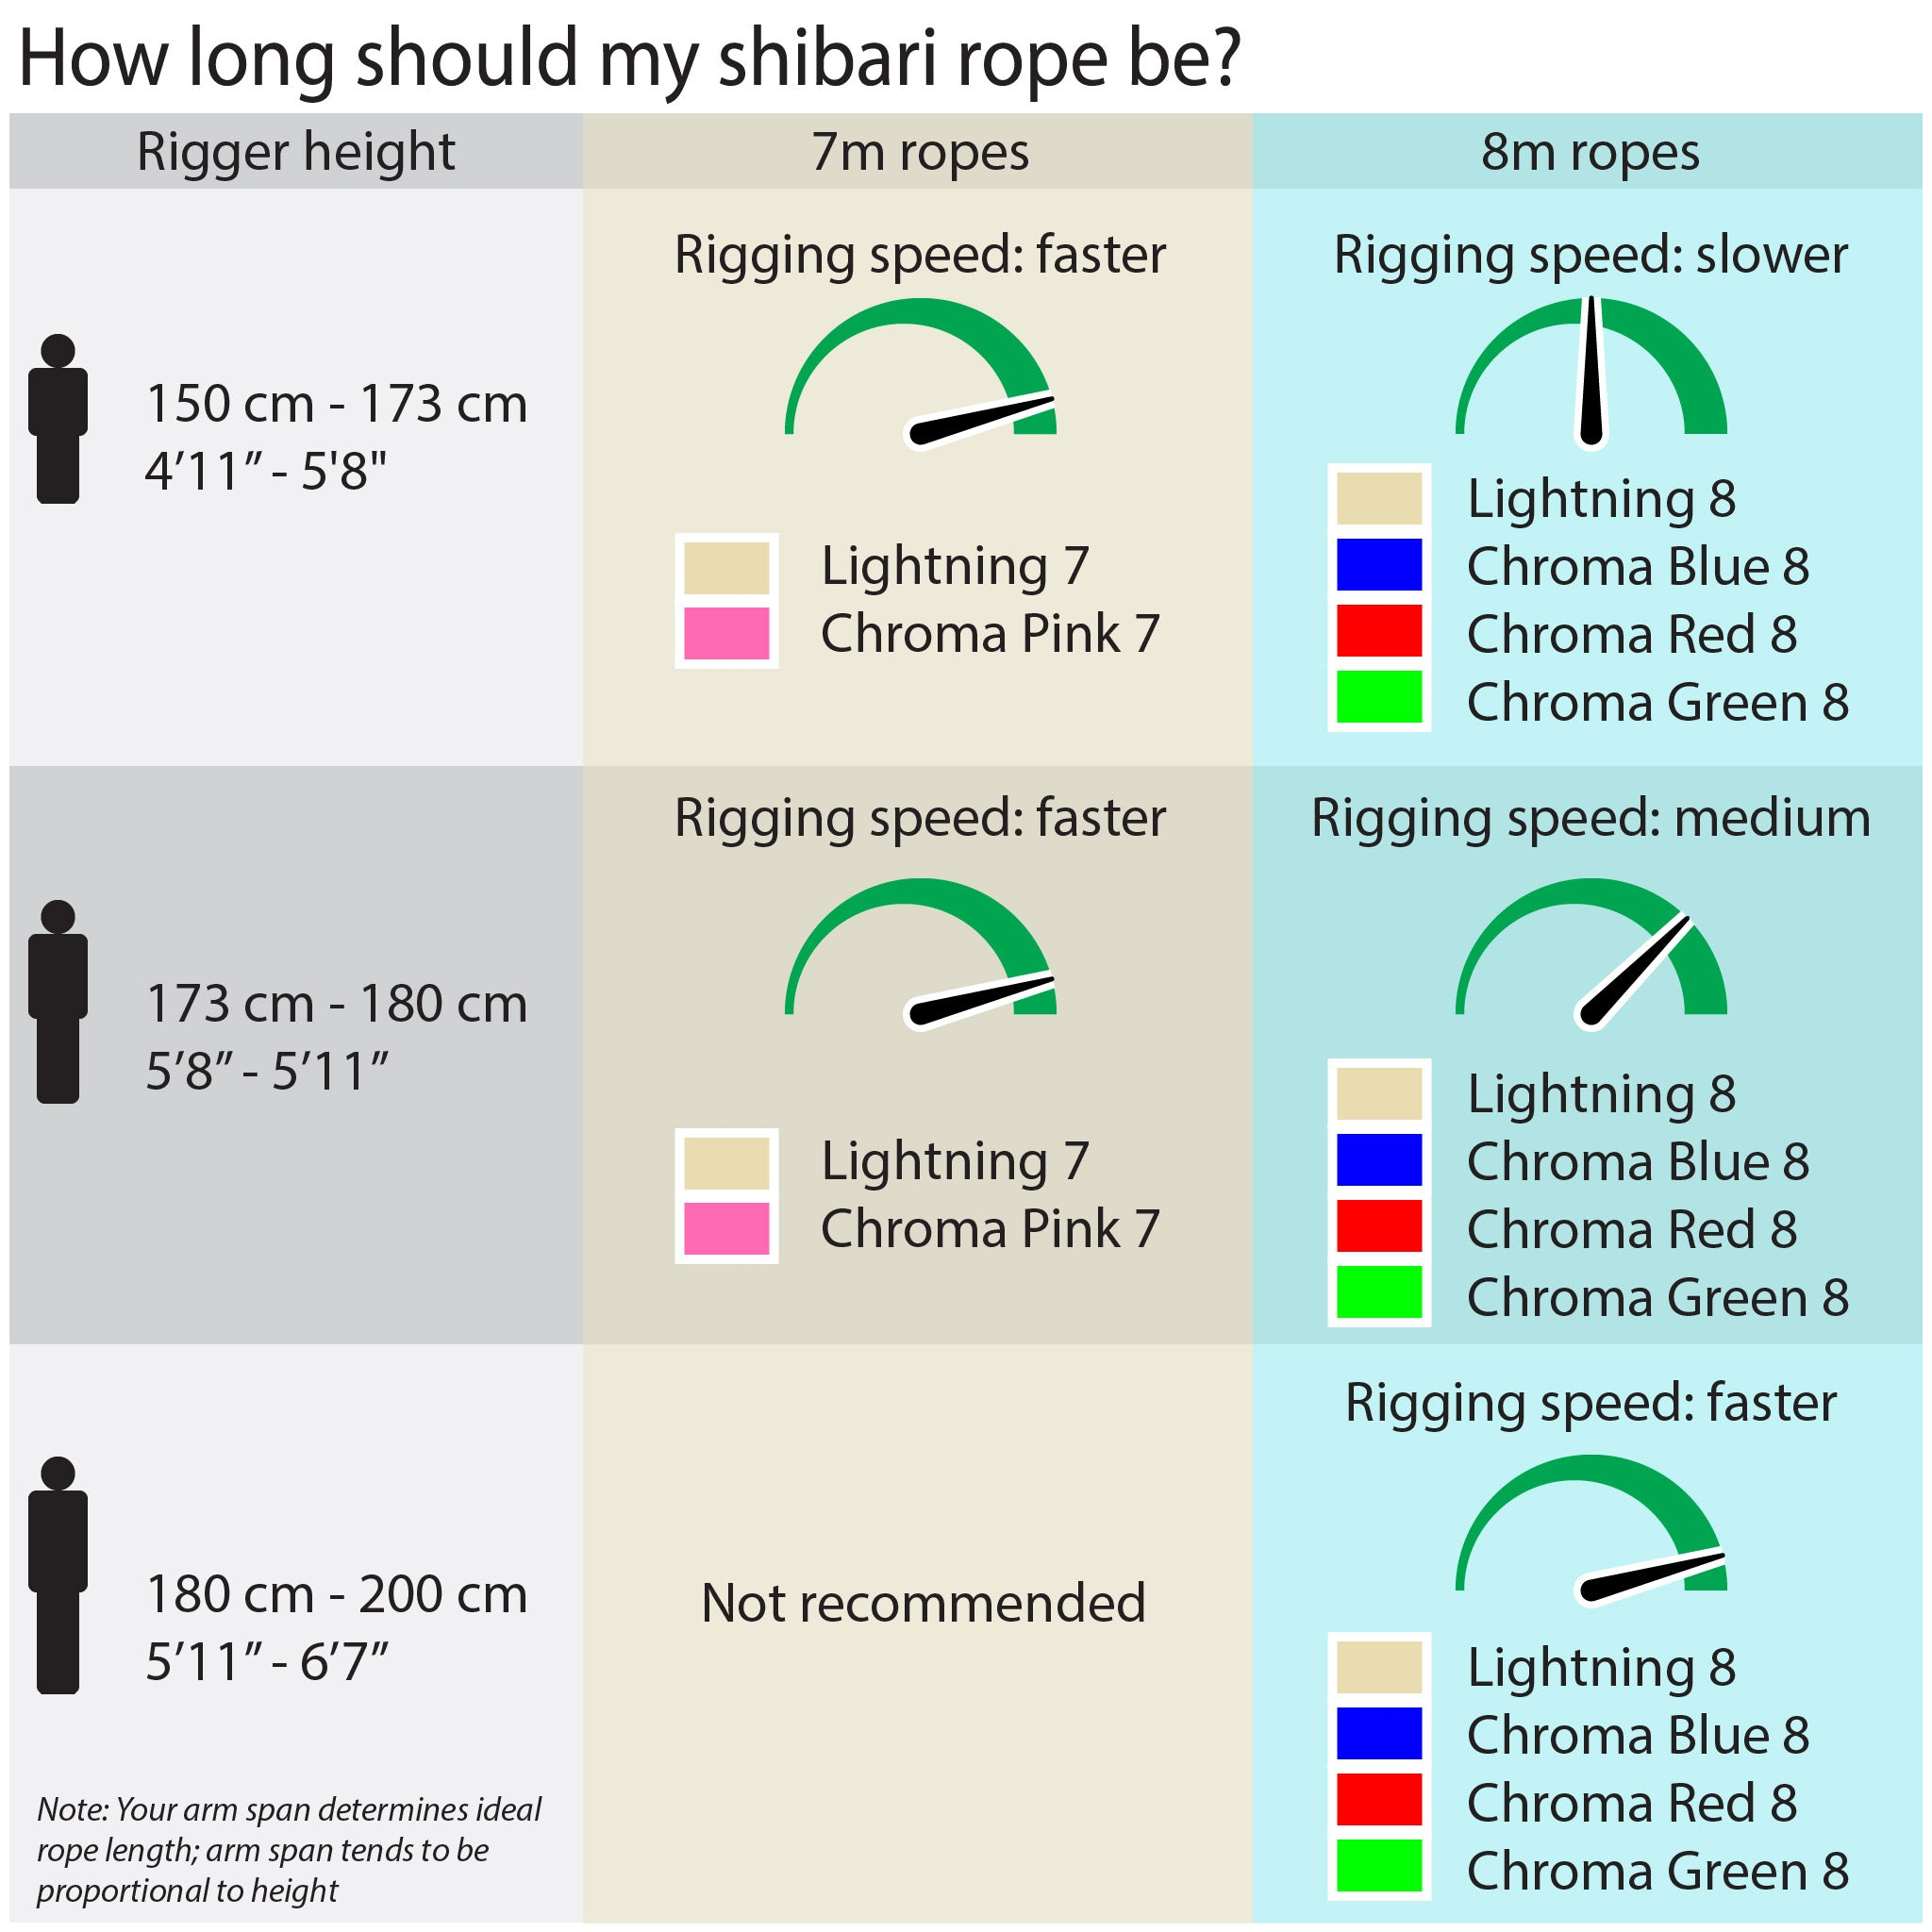 How long should my rope be